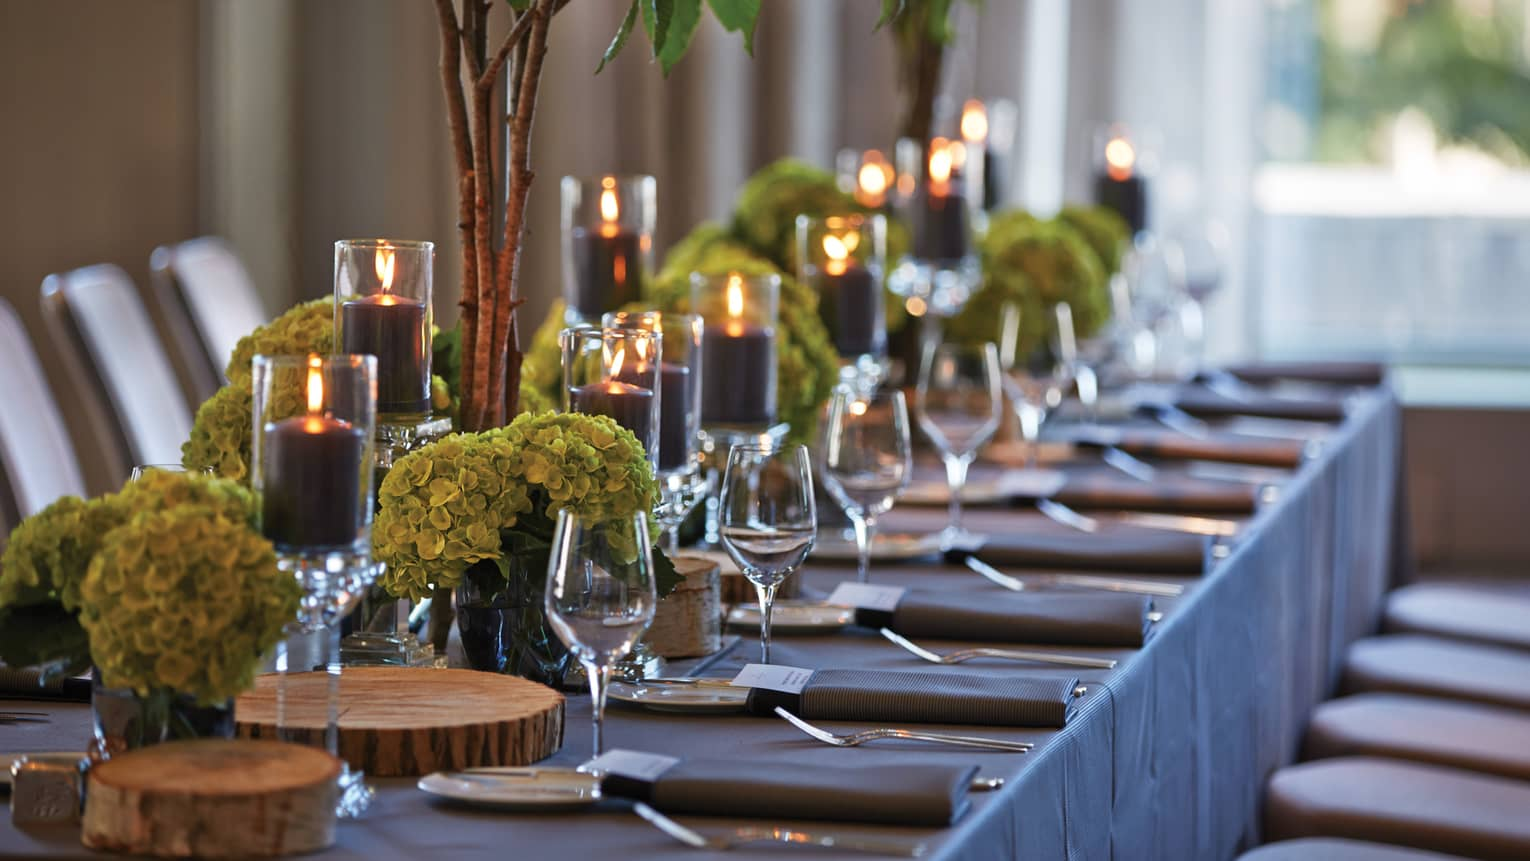 Black pillar candles in votives, green flowers, wine glasses along banquet table